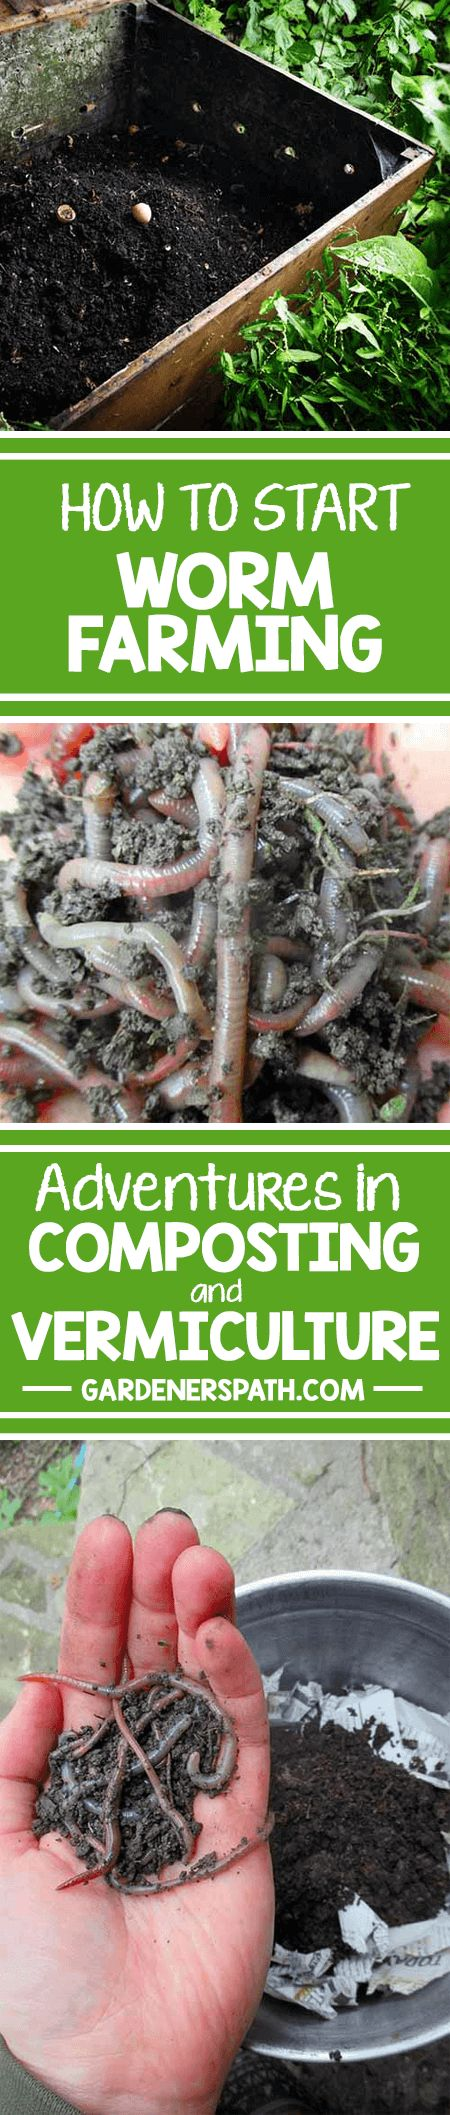 best 25 worm farm ideas on pinterest worm composting worms and